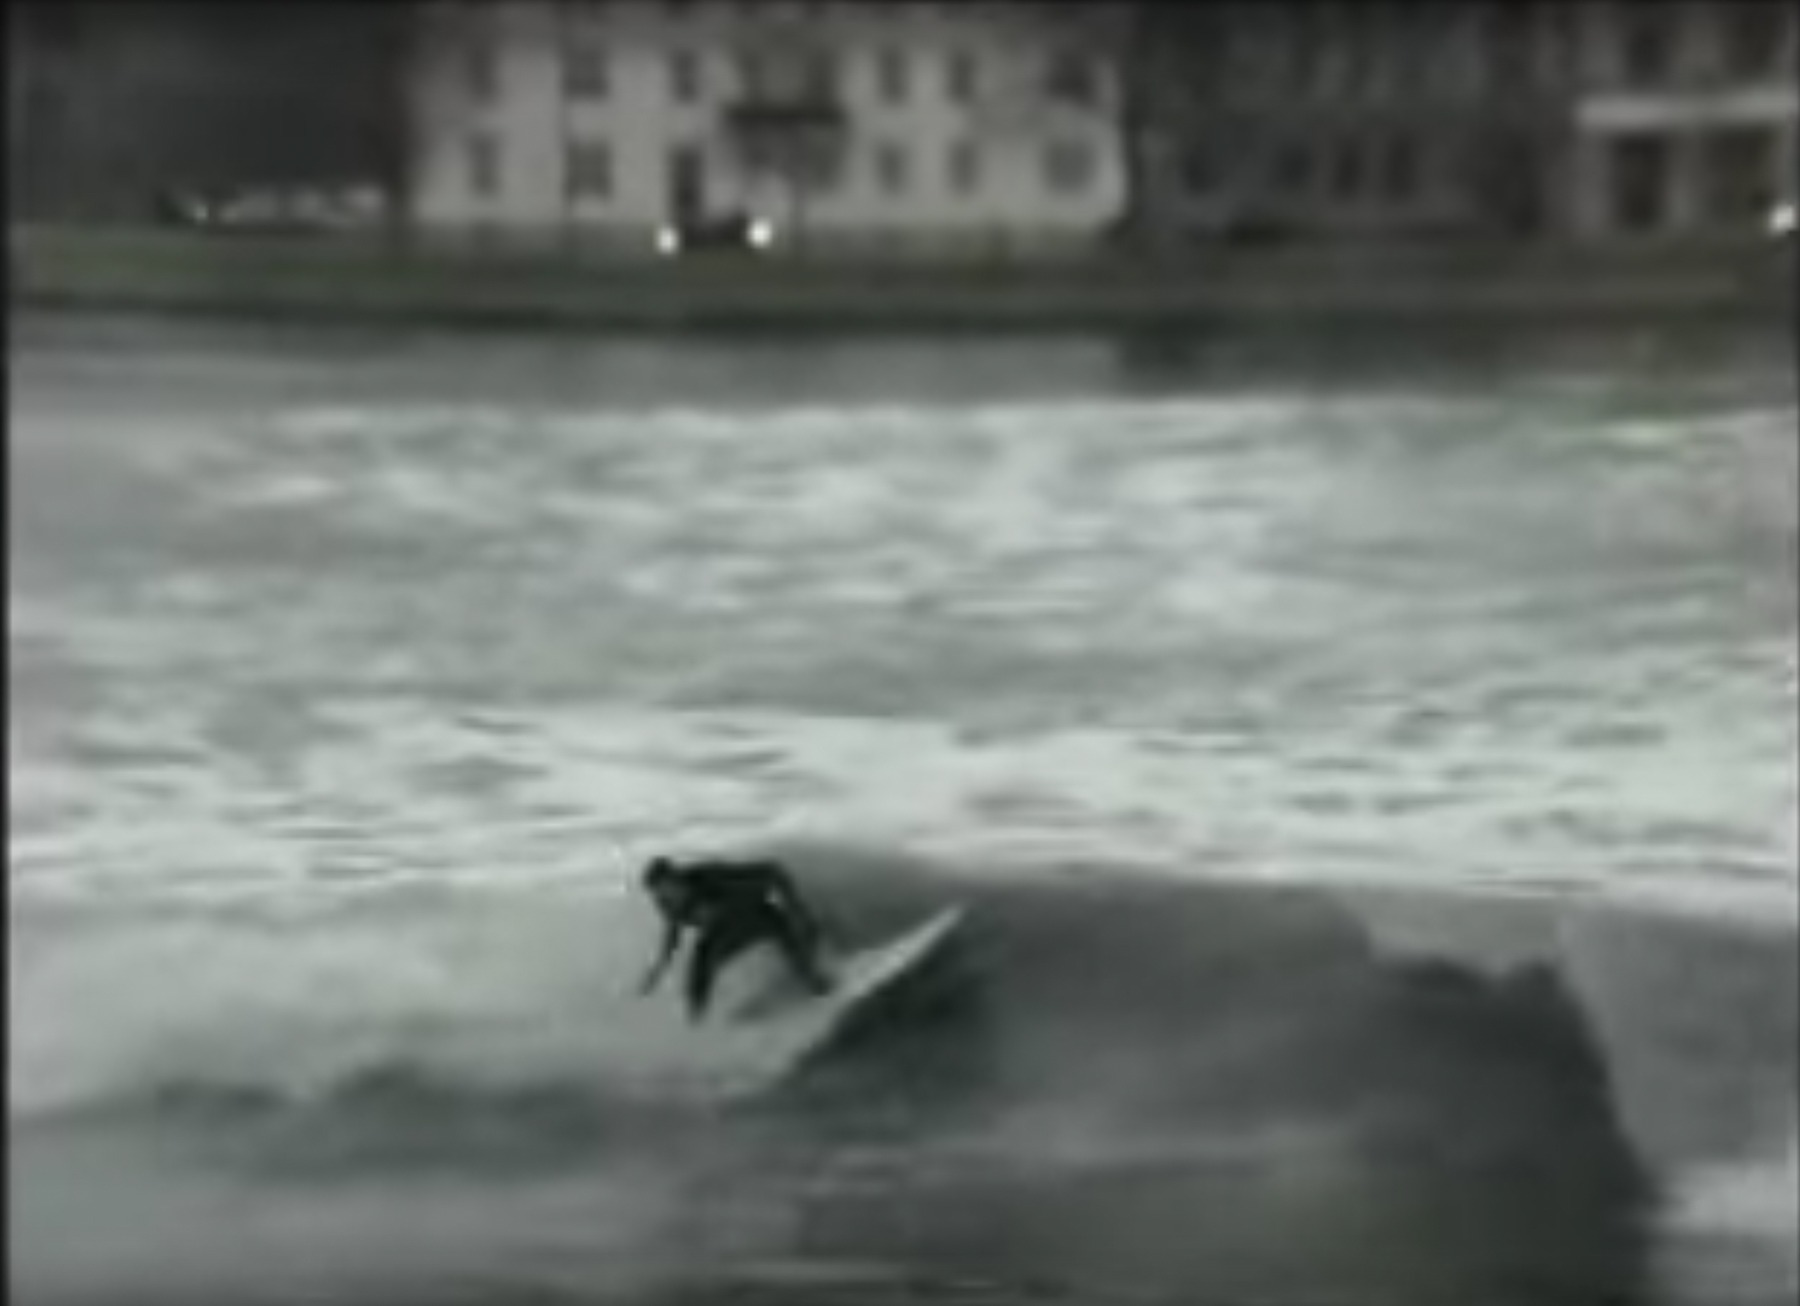 Still frame from the viral video Dynamite Surfing (2007)